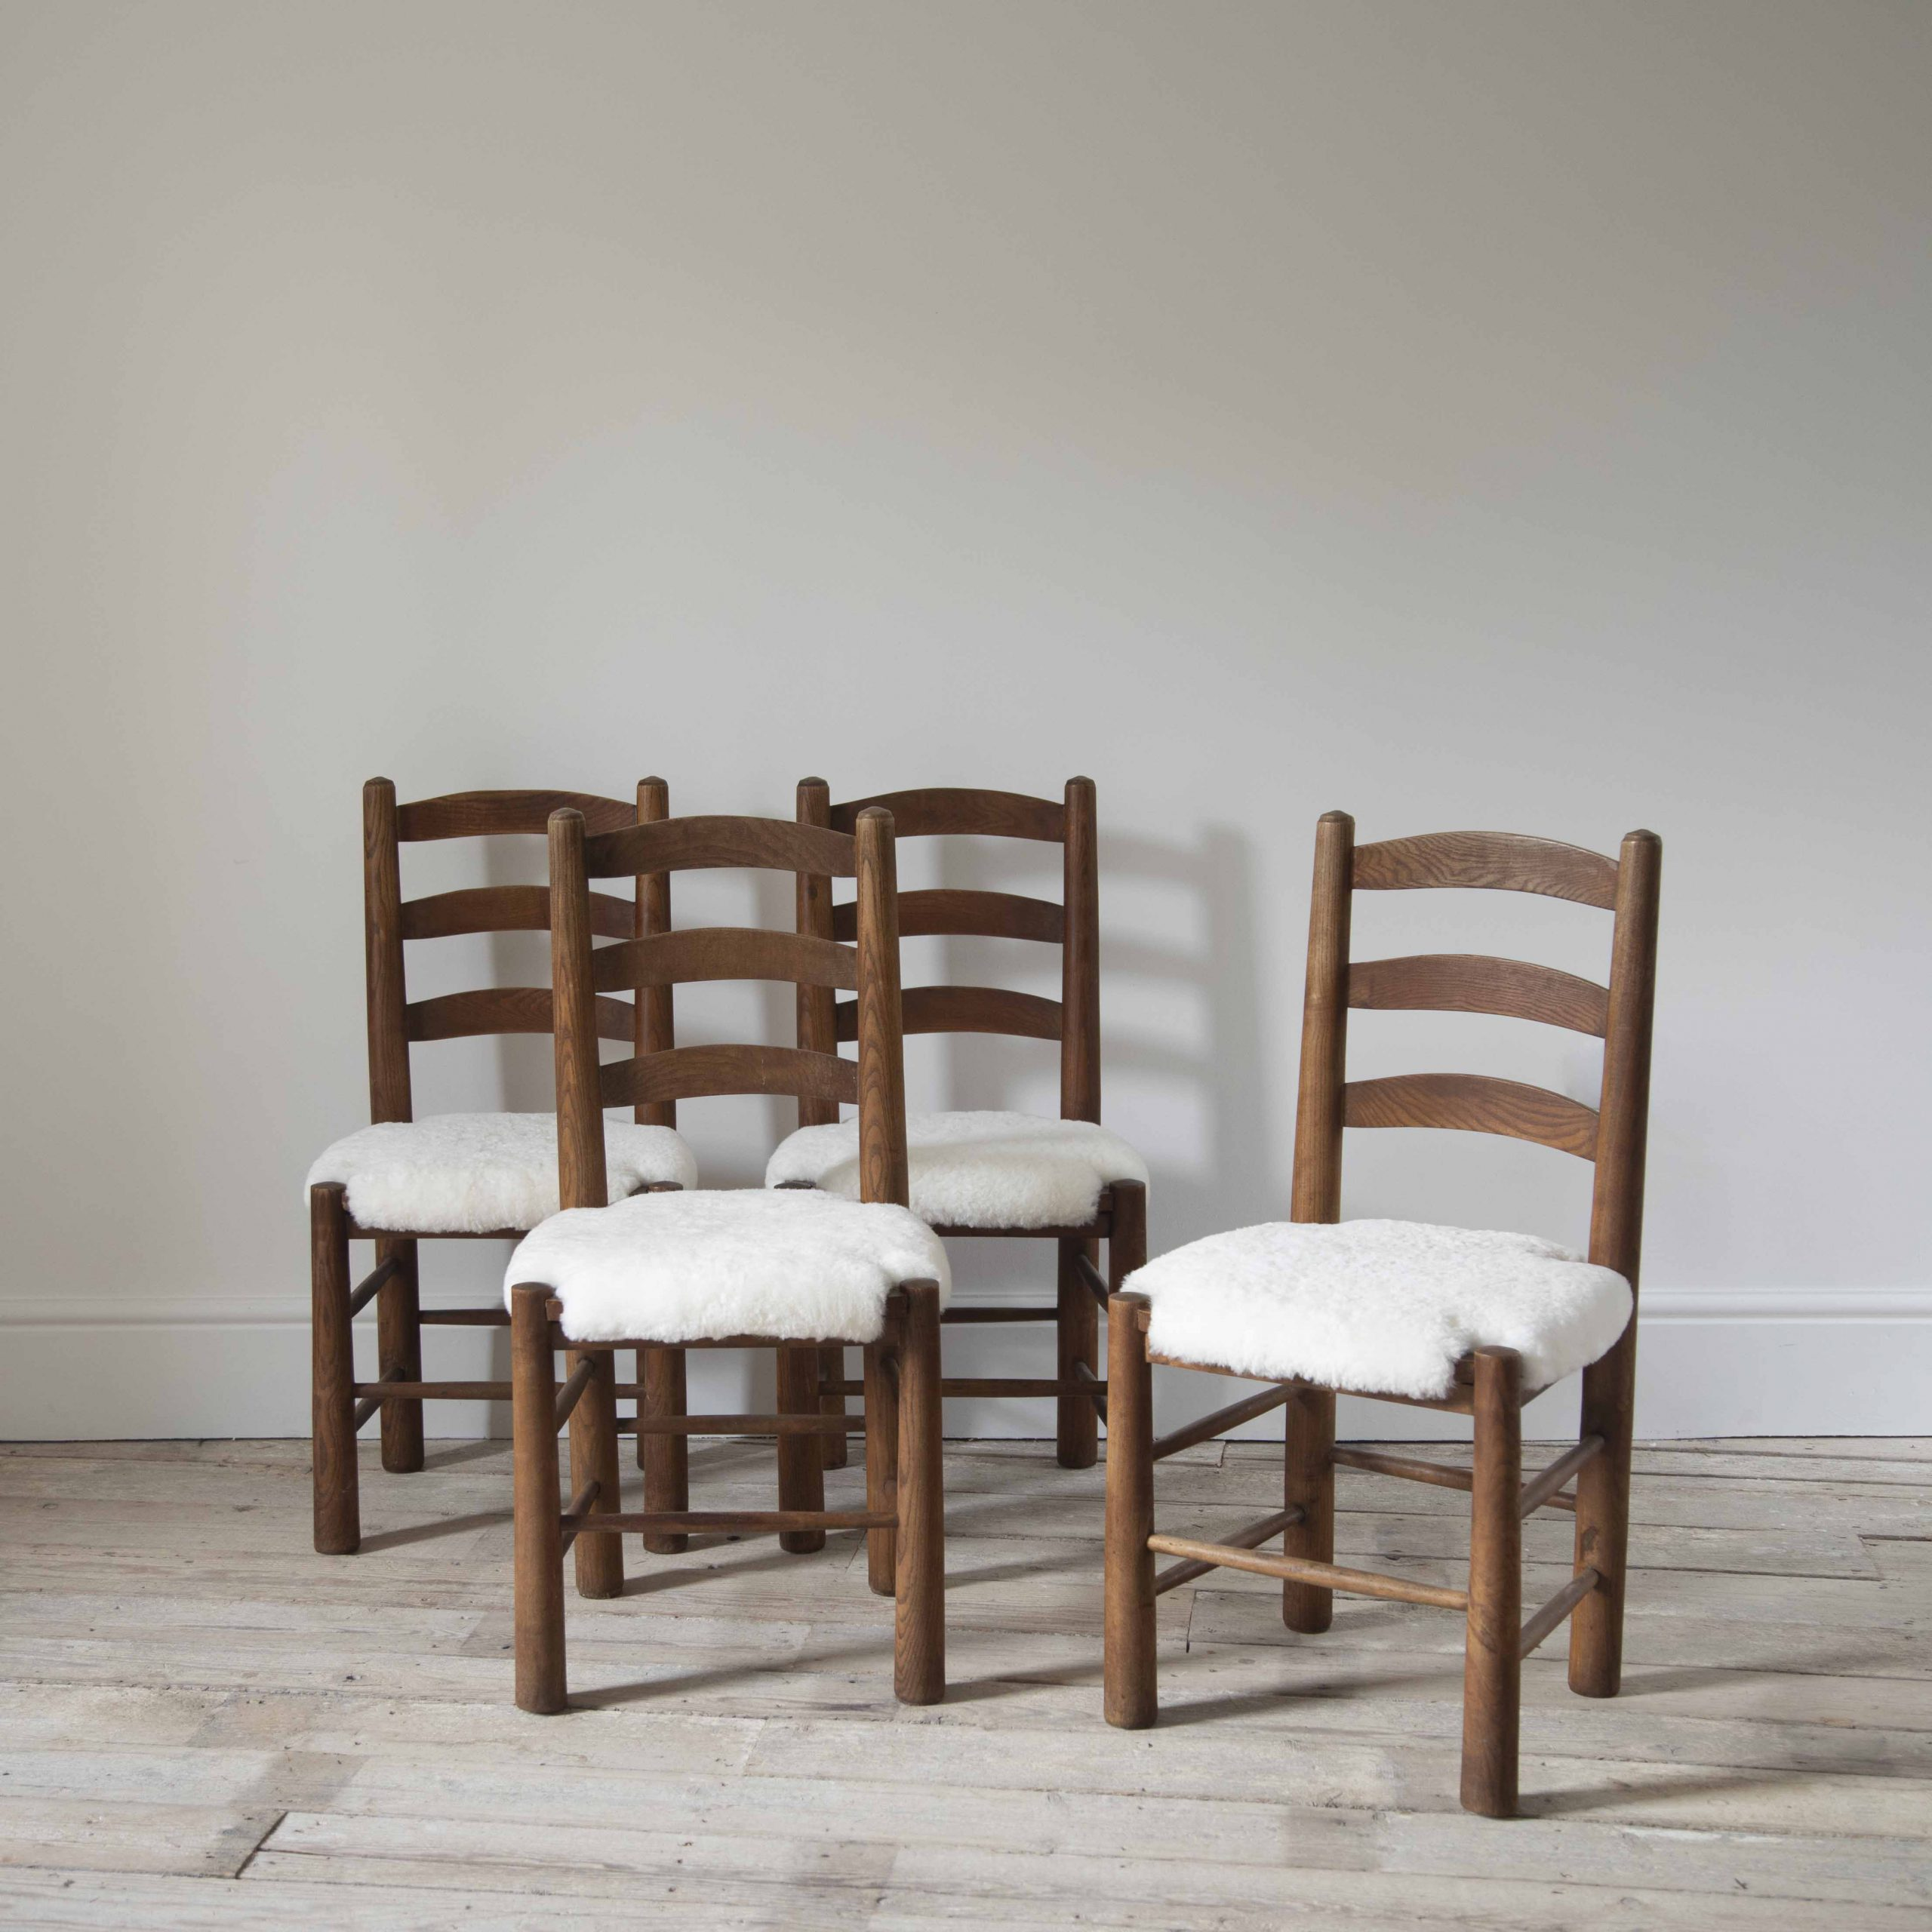 A Set of 4 French Chairs